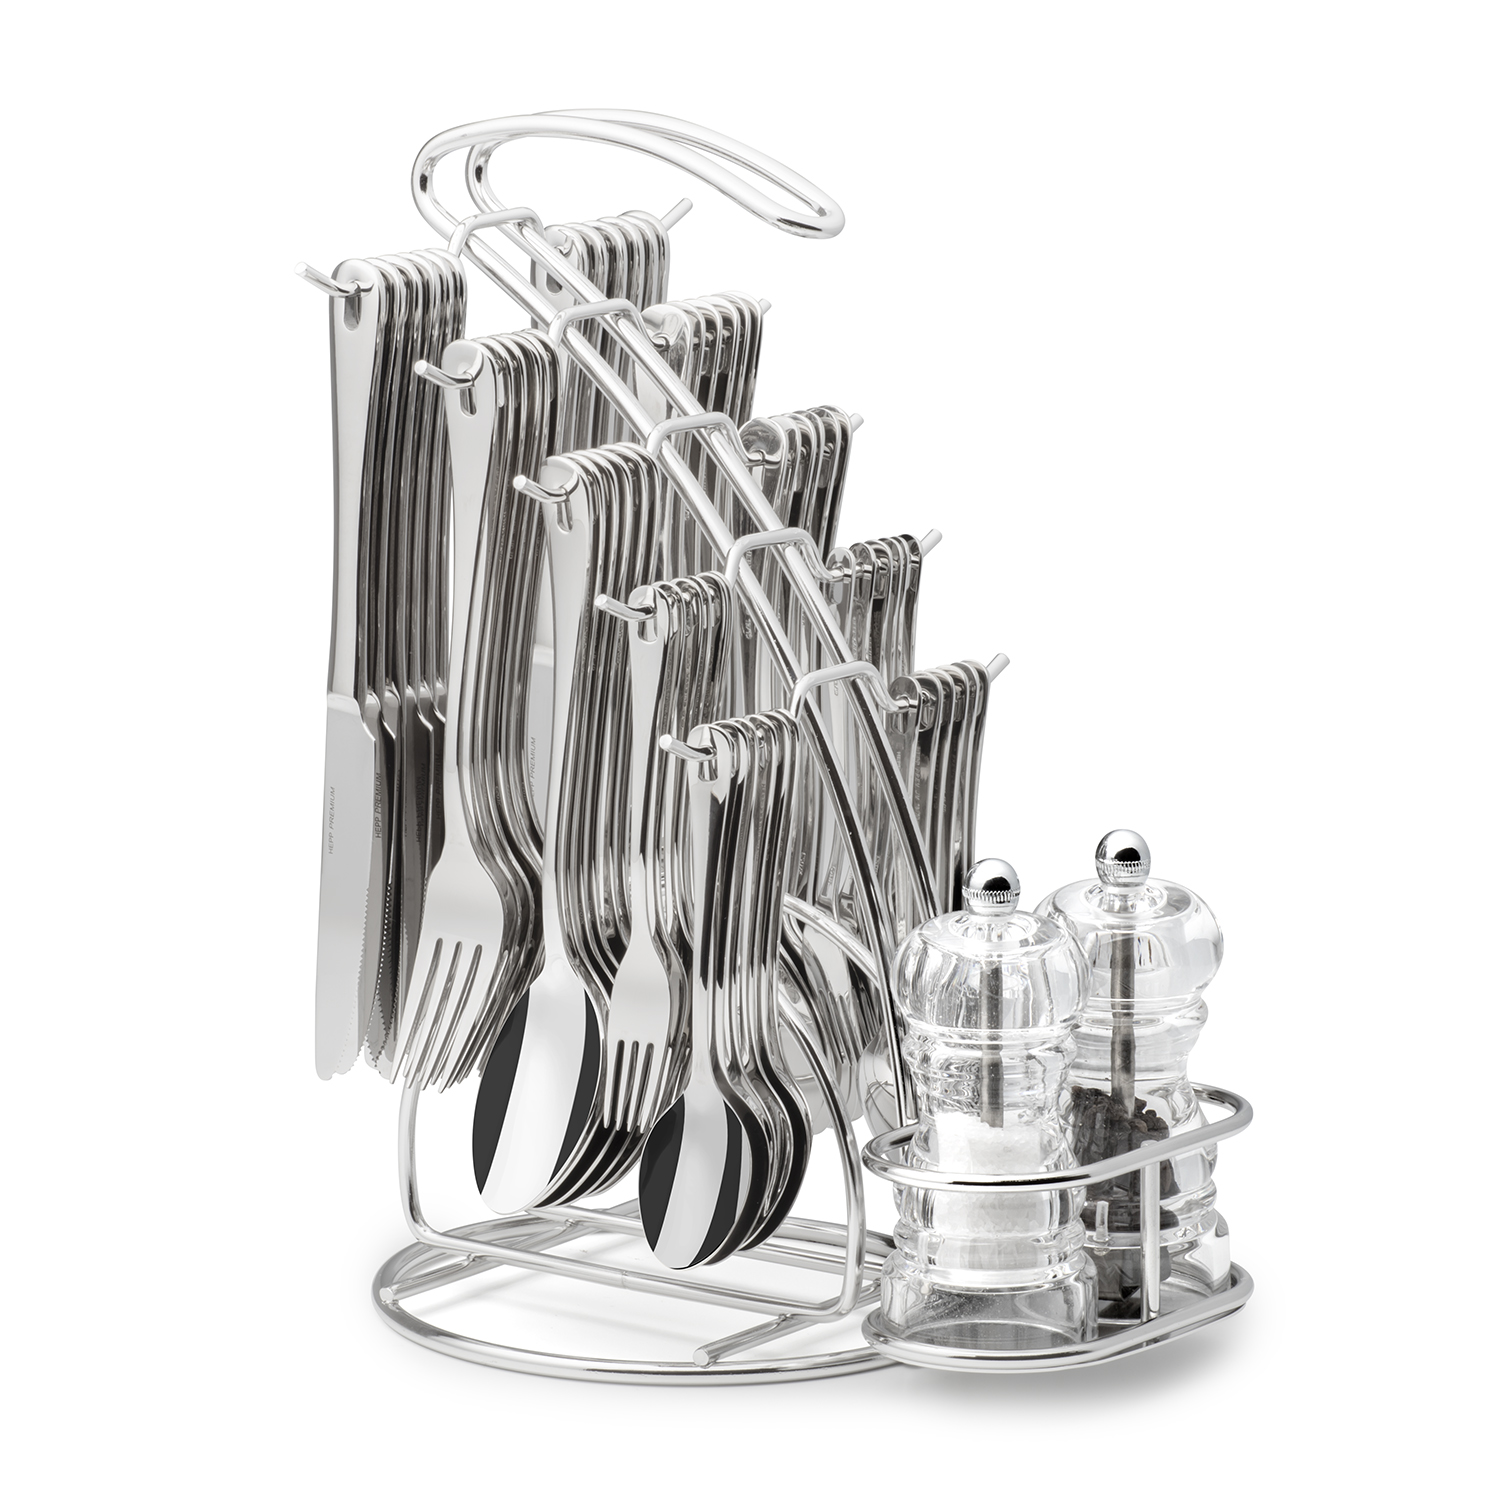 aida onlineshop aida besteckst nder online kaufen. Black Bedroom Furniture Sets. Home Design Ideas